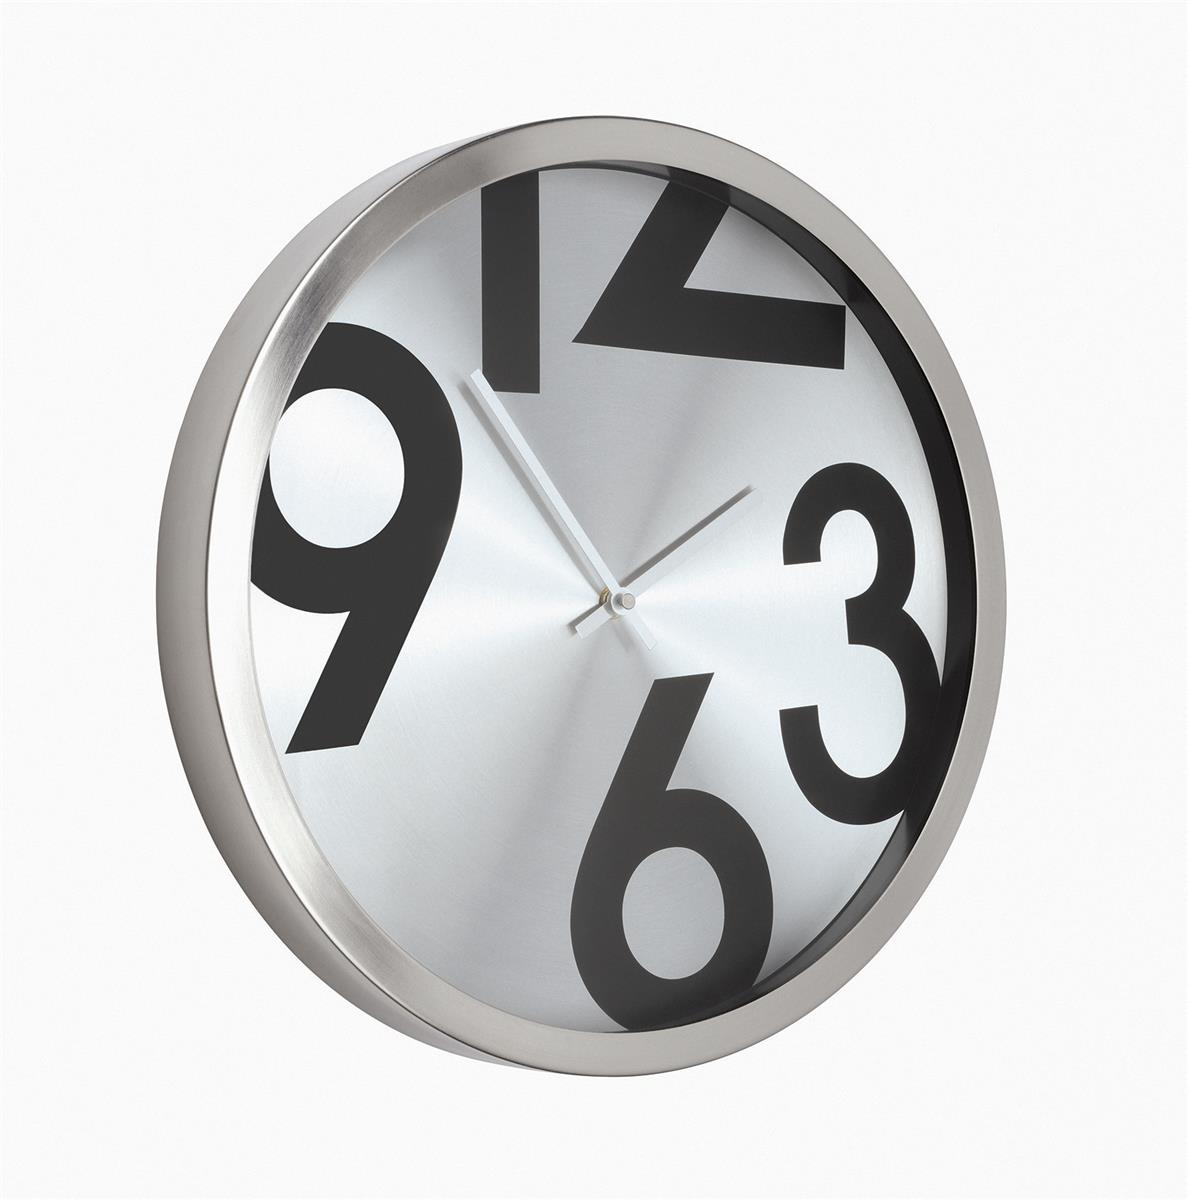 Image for Wall Clock Round Metal Ref 2716